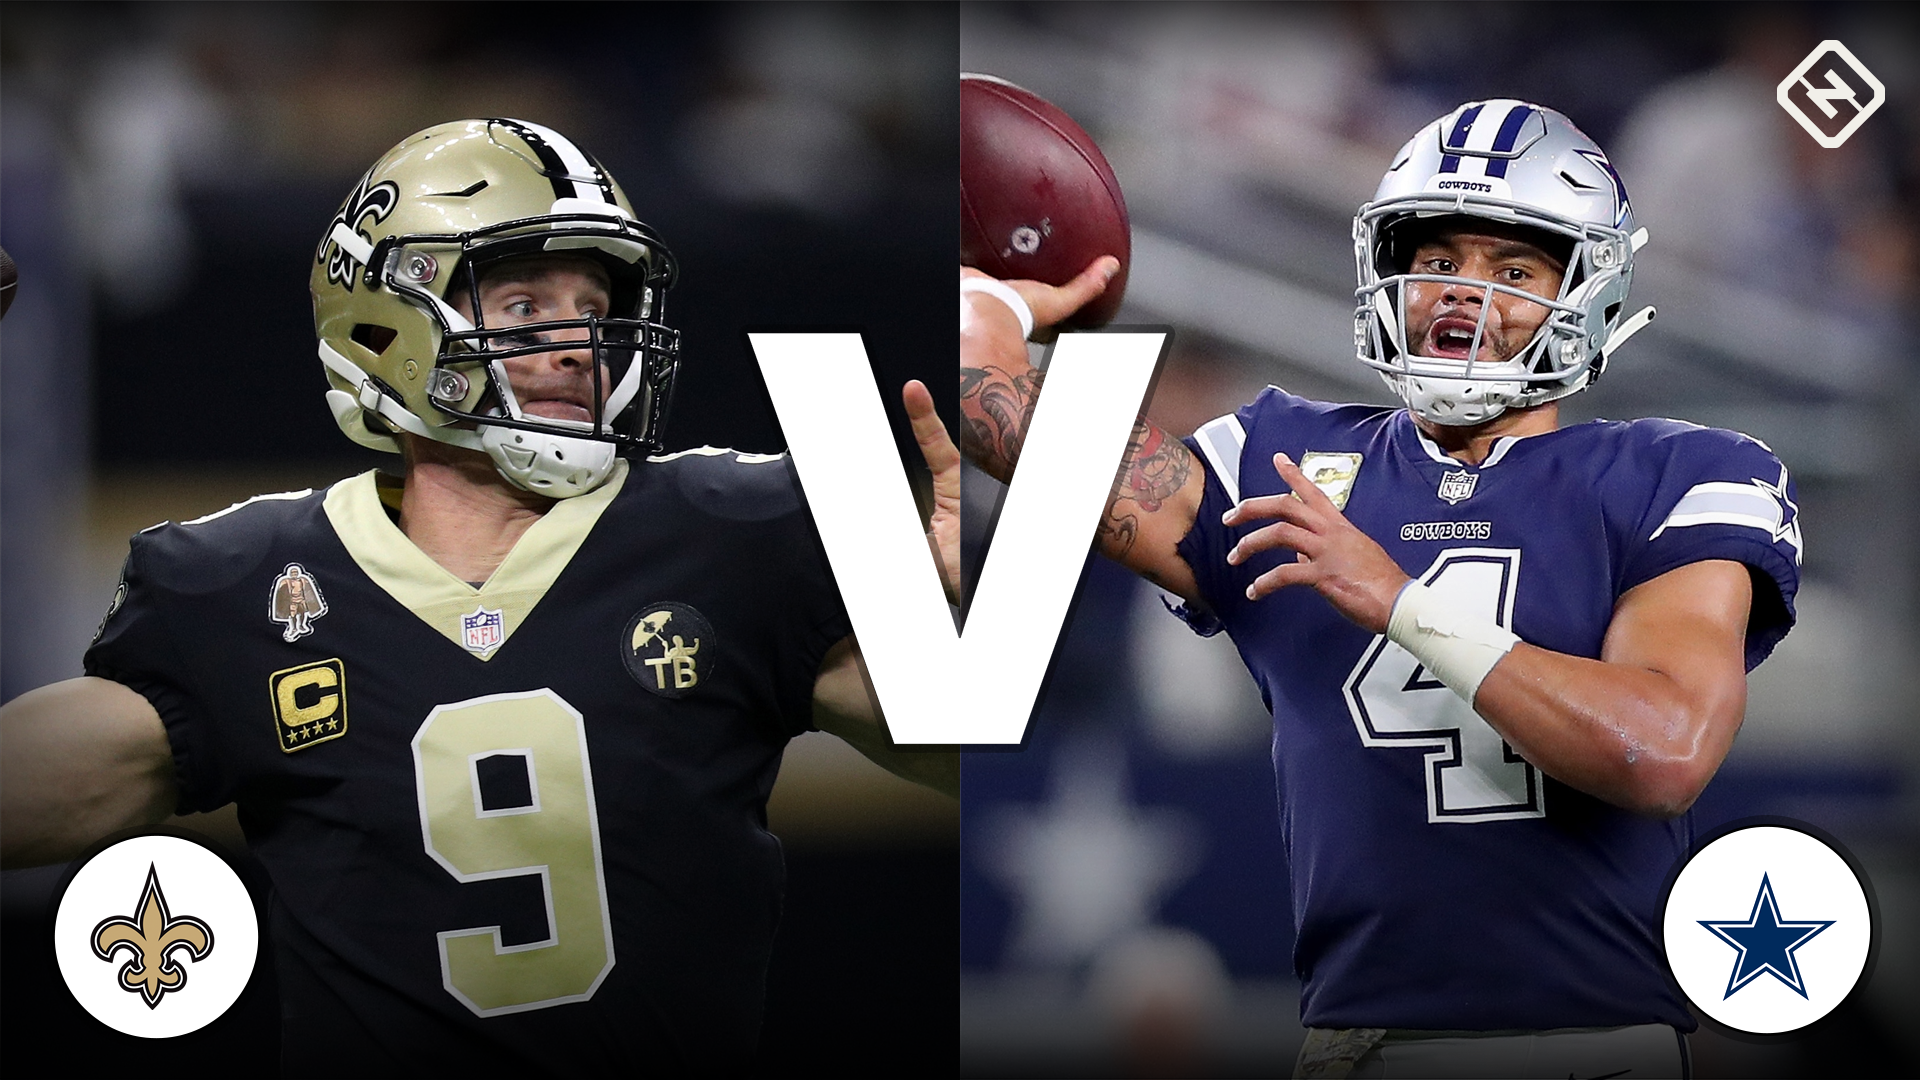 Saints vs. Cowboys: Time, TV channel, how to watch online